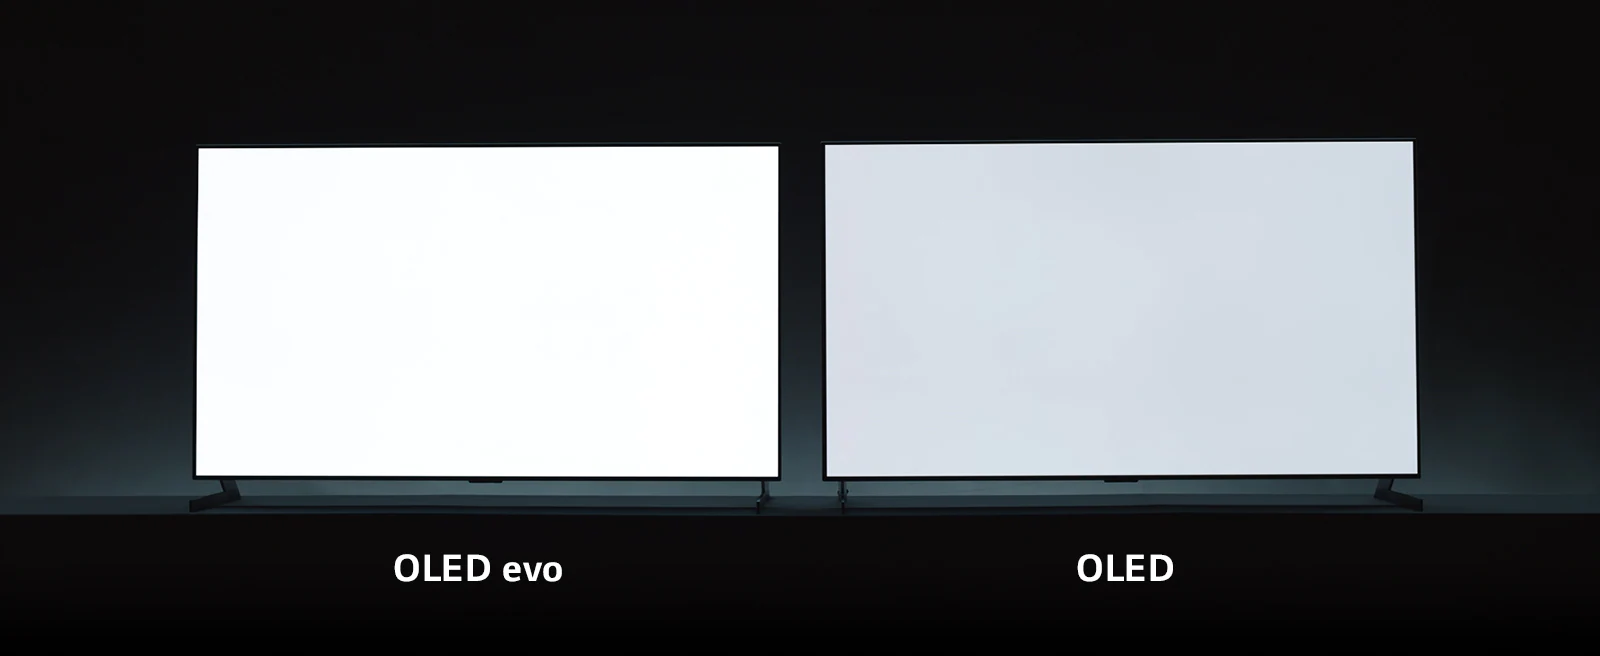 """Try playing games on LG G1: It turns out that the new OLED Evo TV is the most """"genuine"""" game screen - VnReview"""